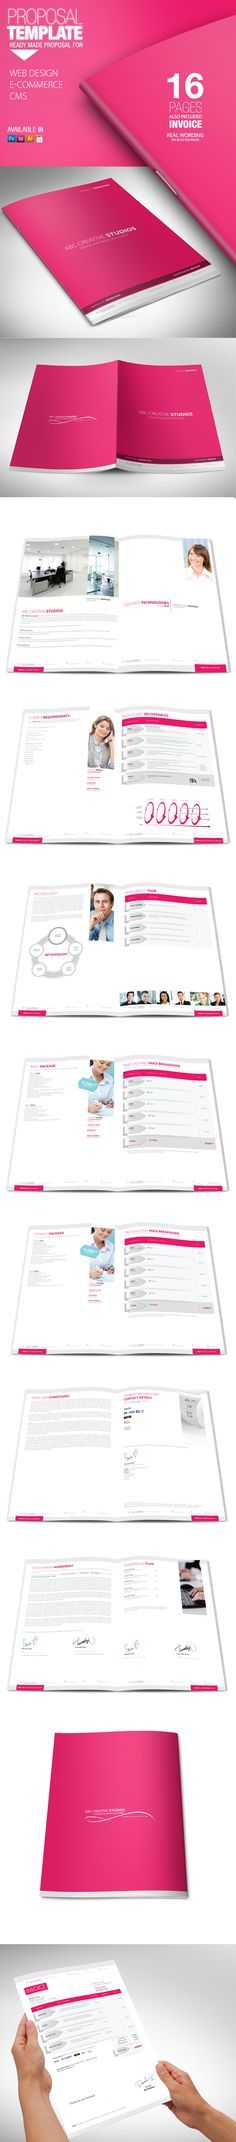 Proposal Proposals, Proposal templates and Template - graphic design invoice sample